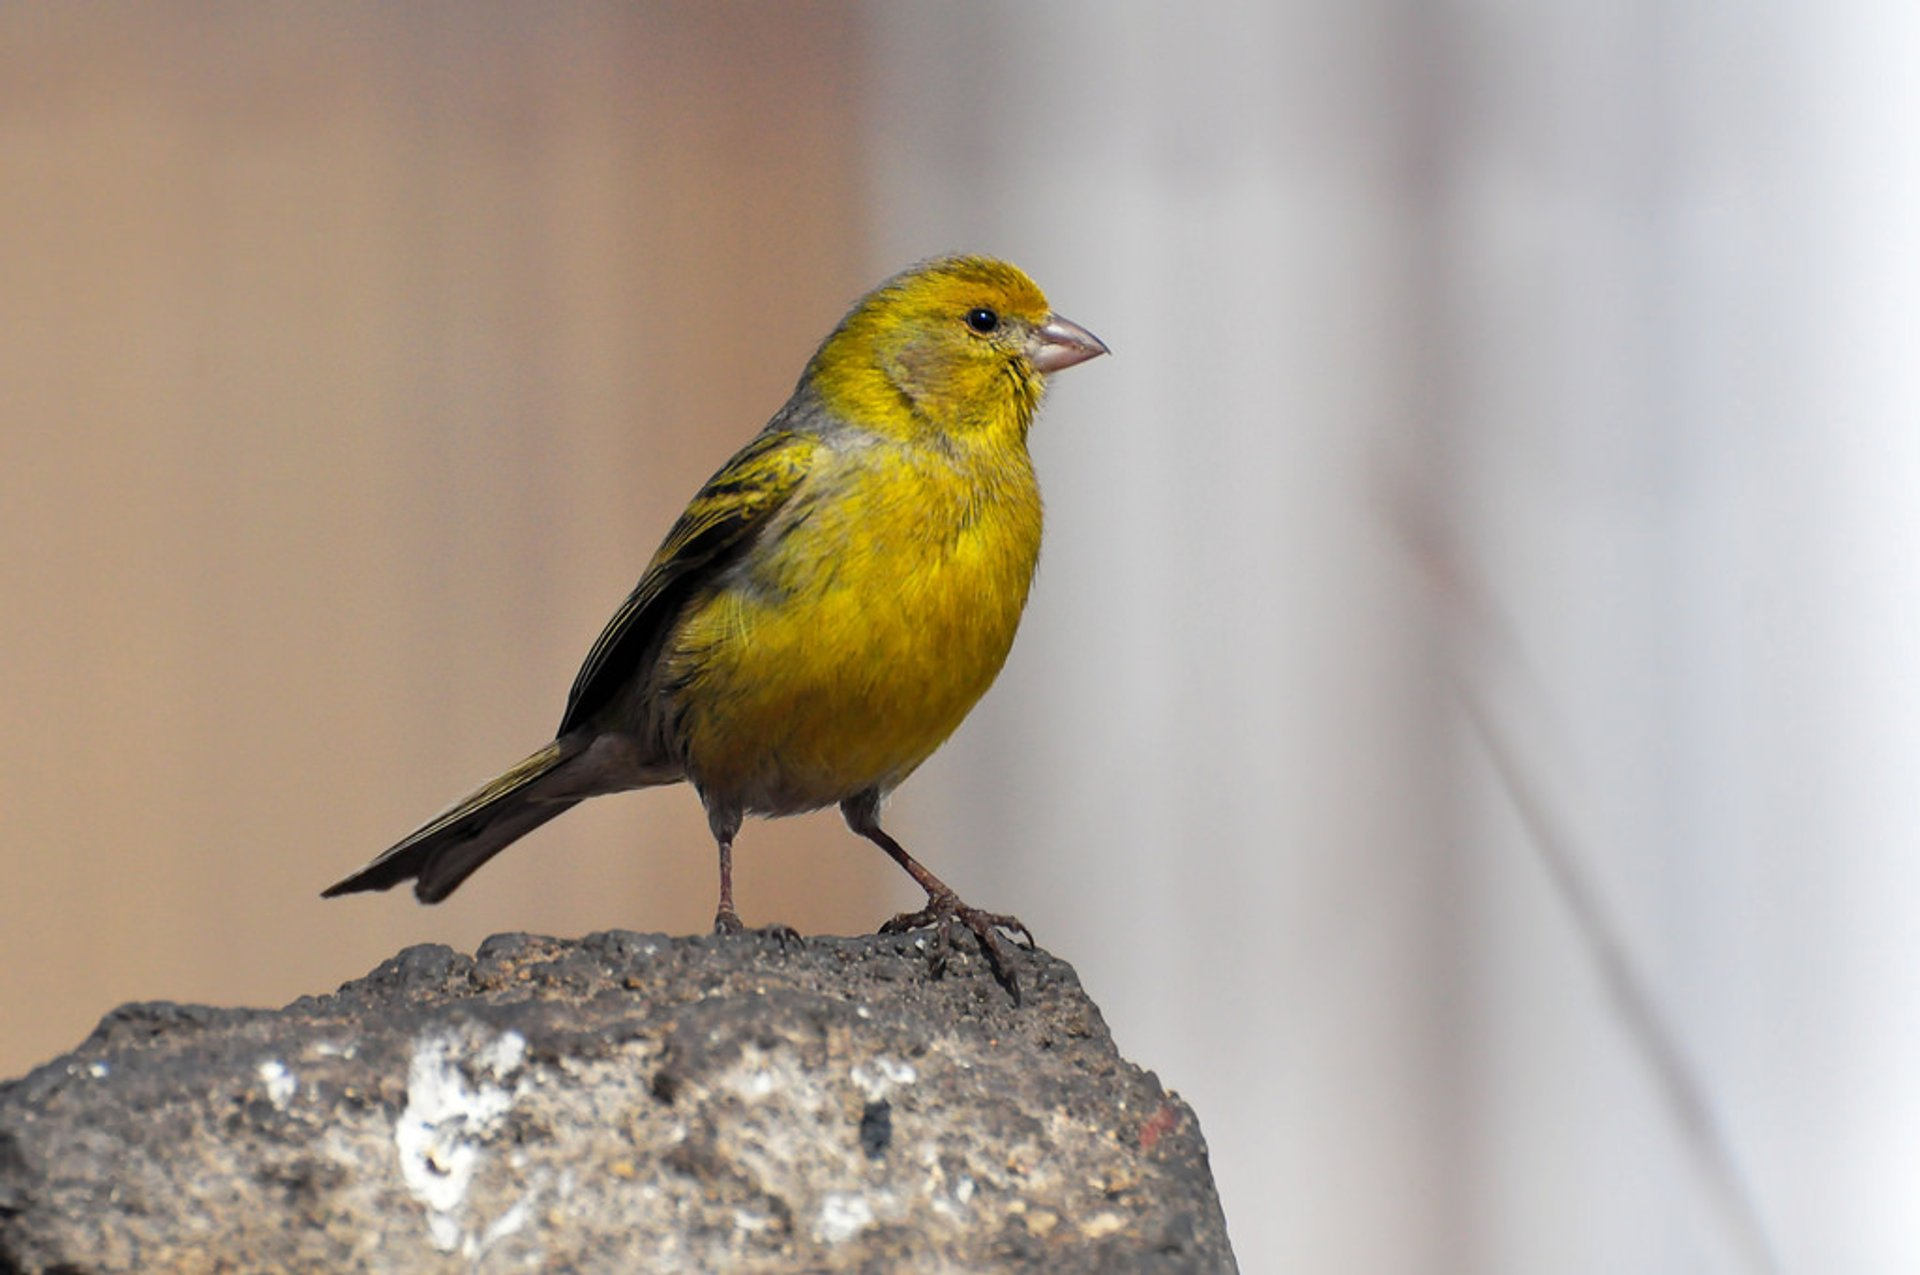 Atlantic Canary Breeding in Canary Islands - Best Time